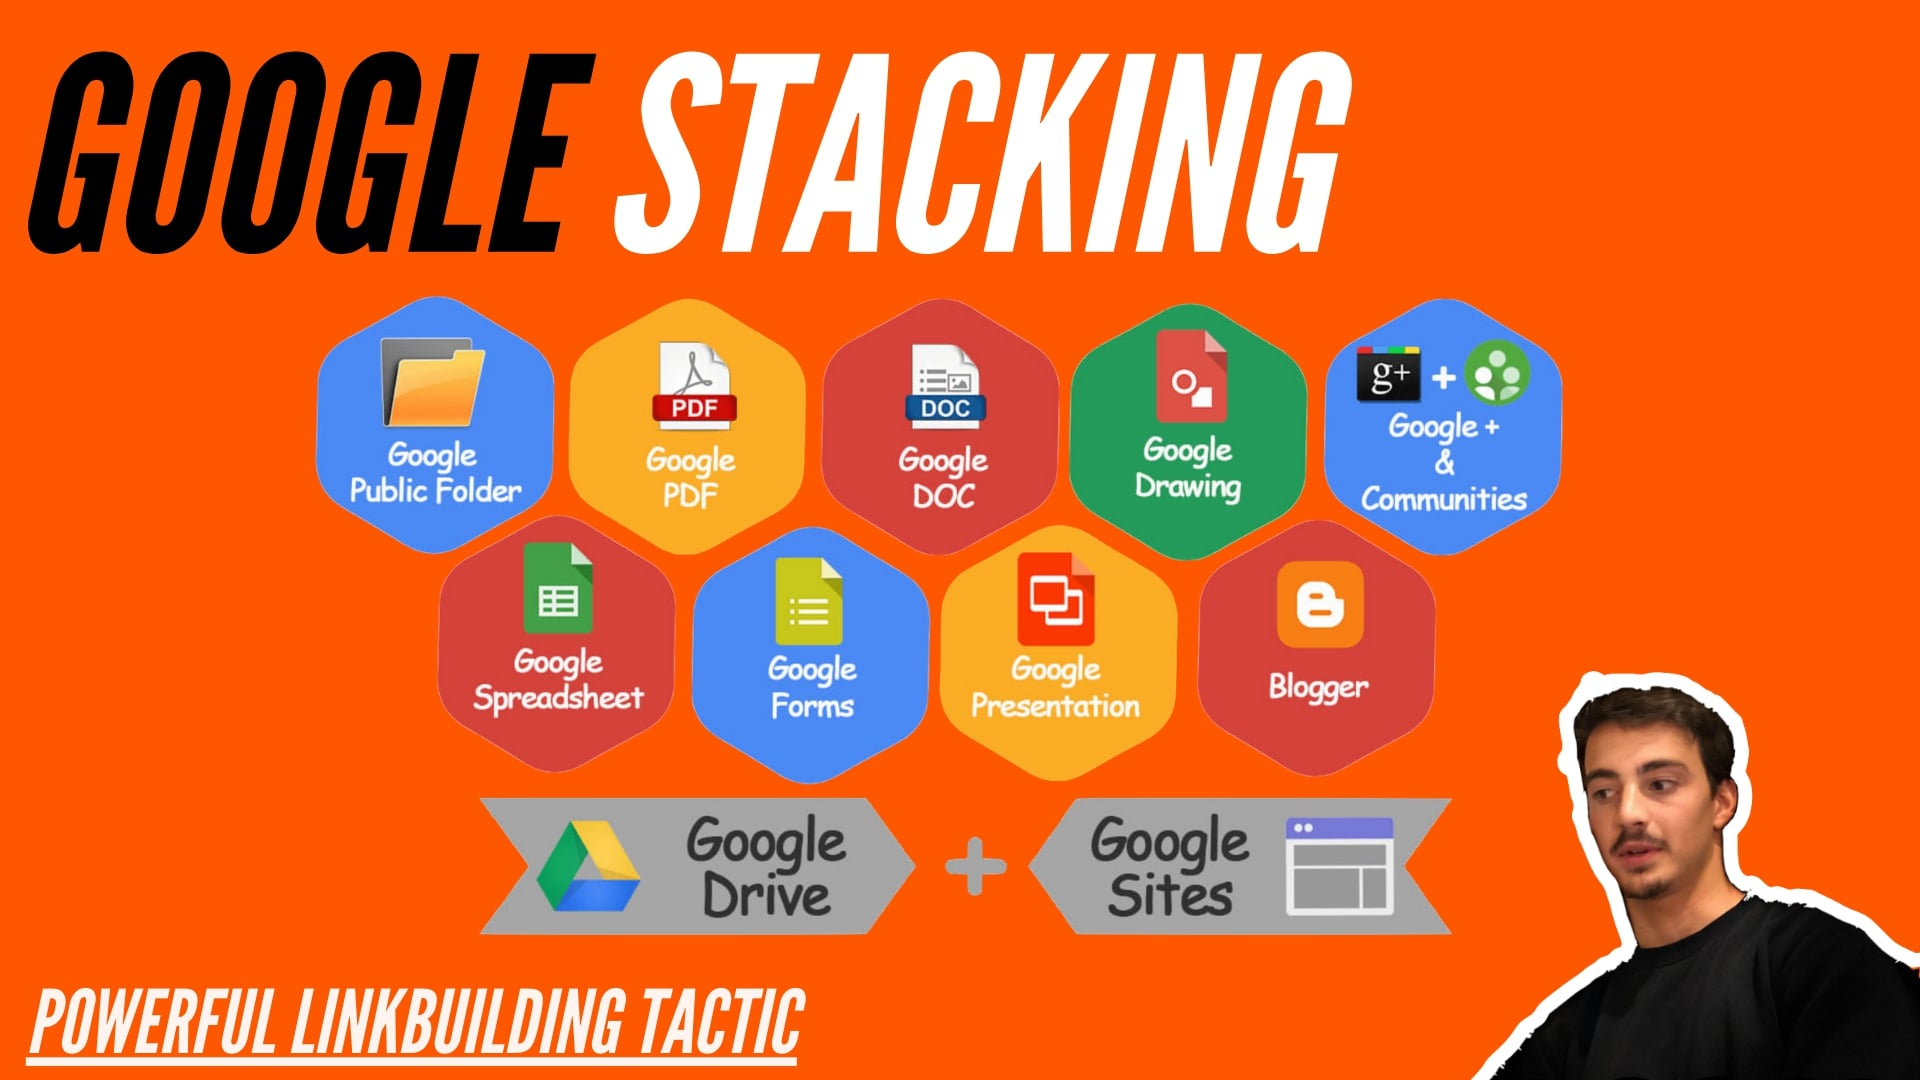 Google Property Stacking - Powerful Linkbuilding Tactic